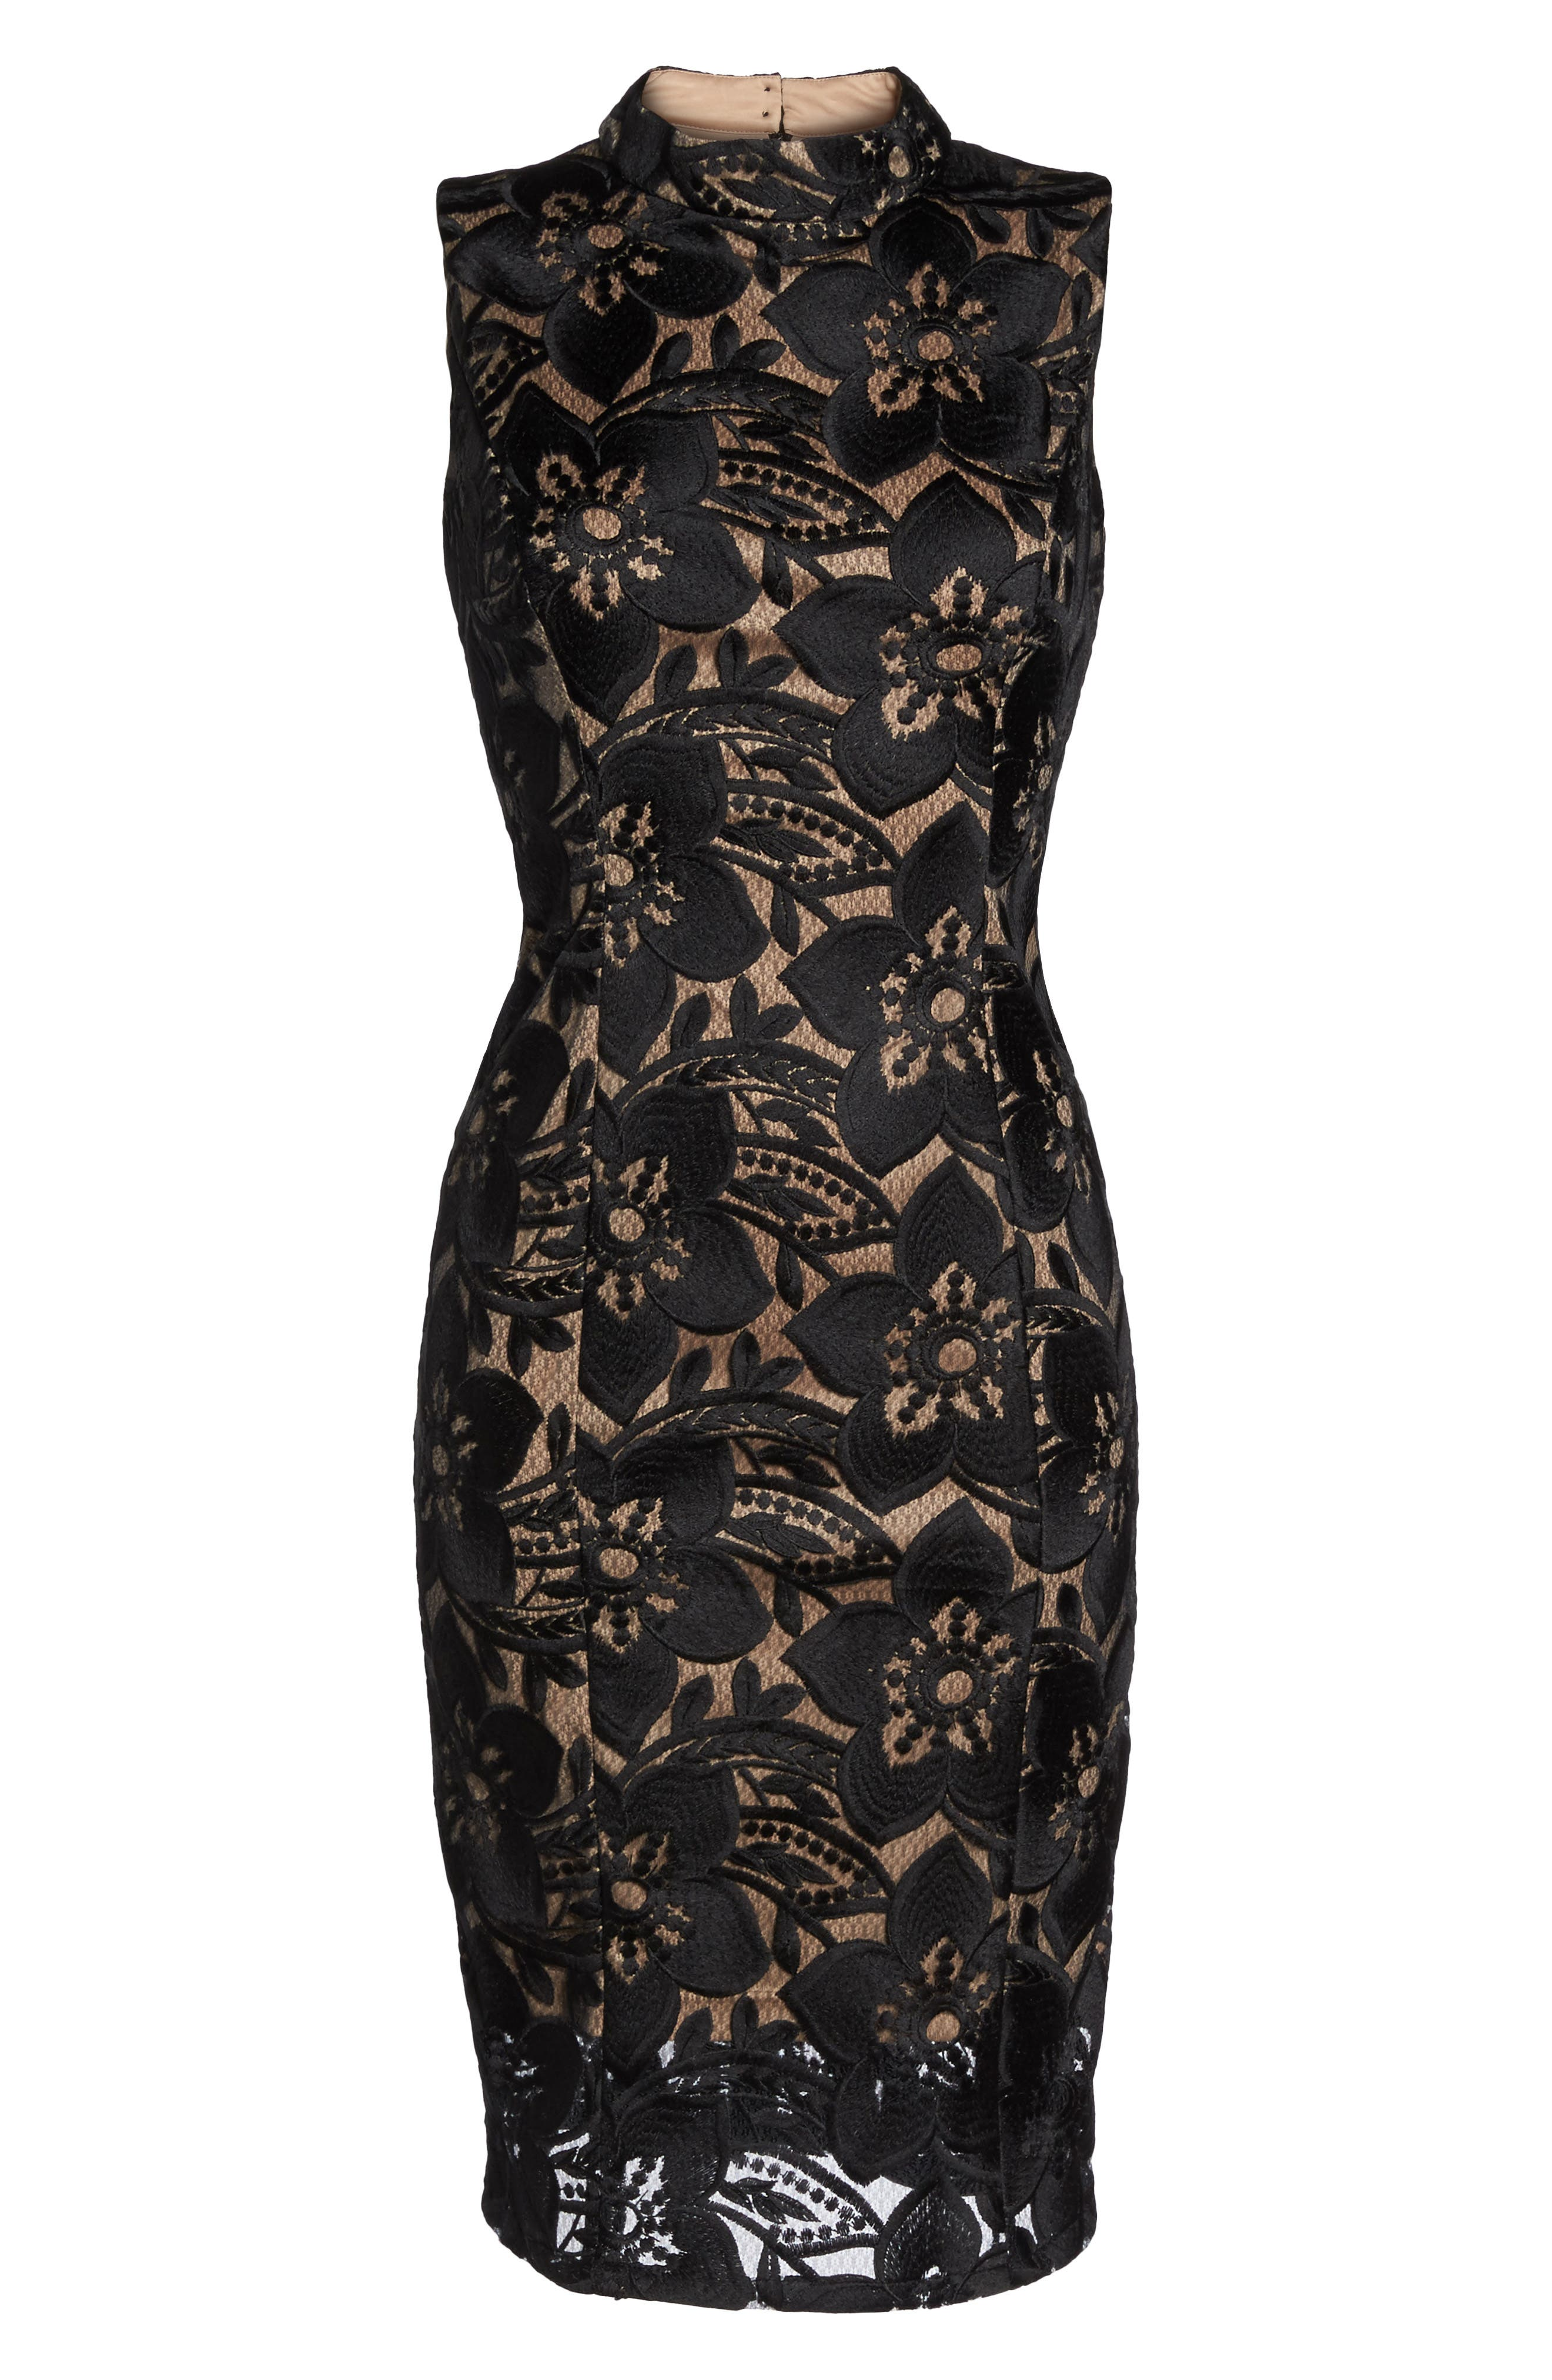 ADRIANNA PAPELL,                             Lace Sheath Dress,                             Alternate thumbnail 6, color,                             002